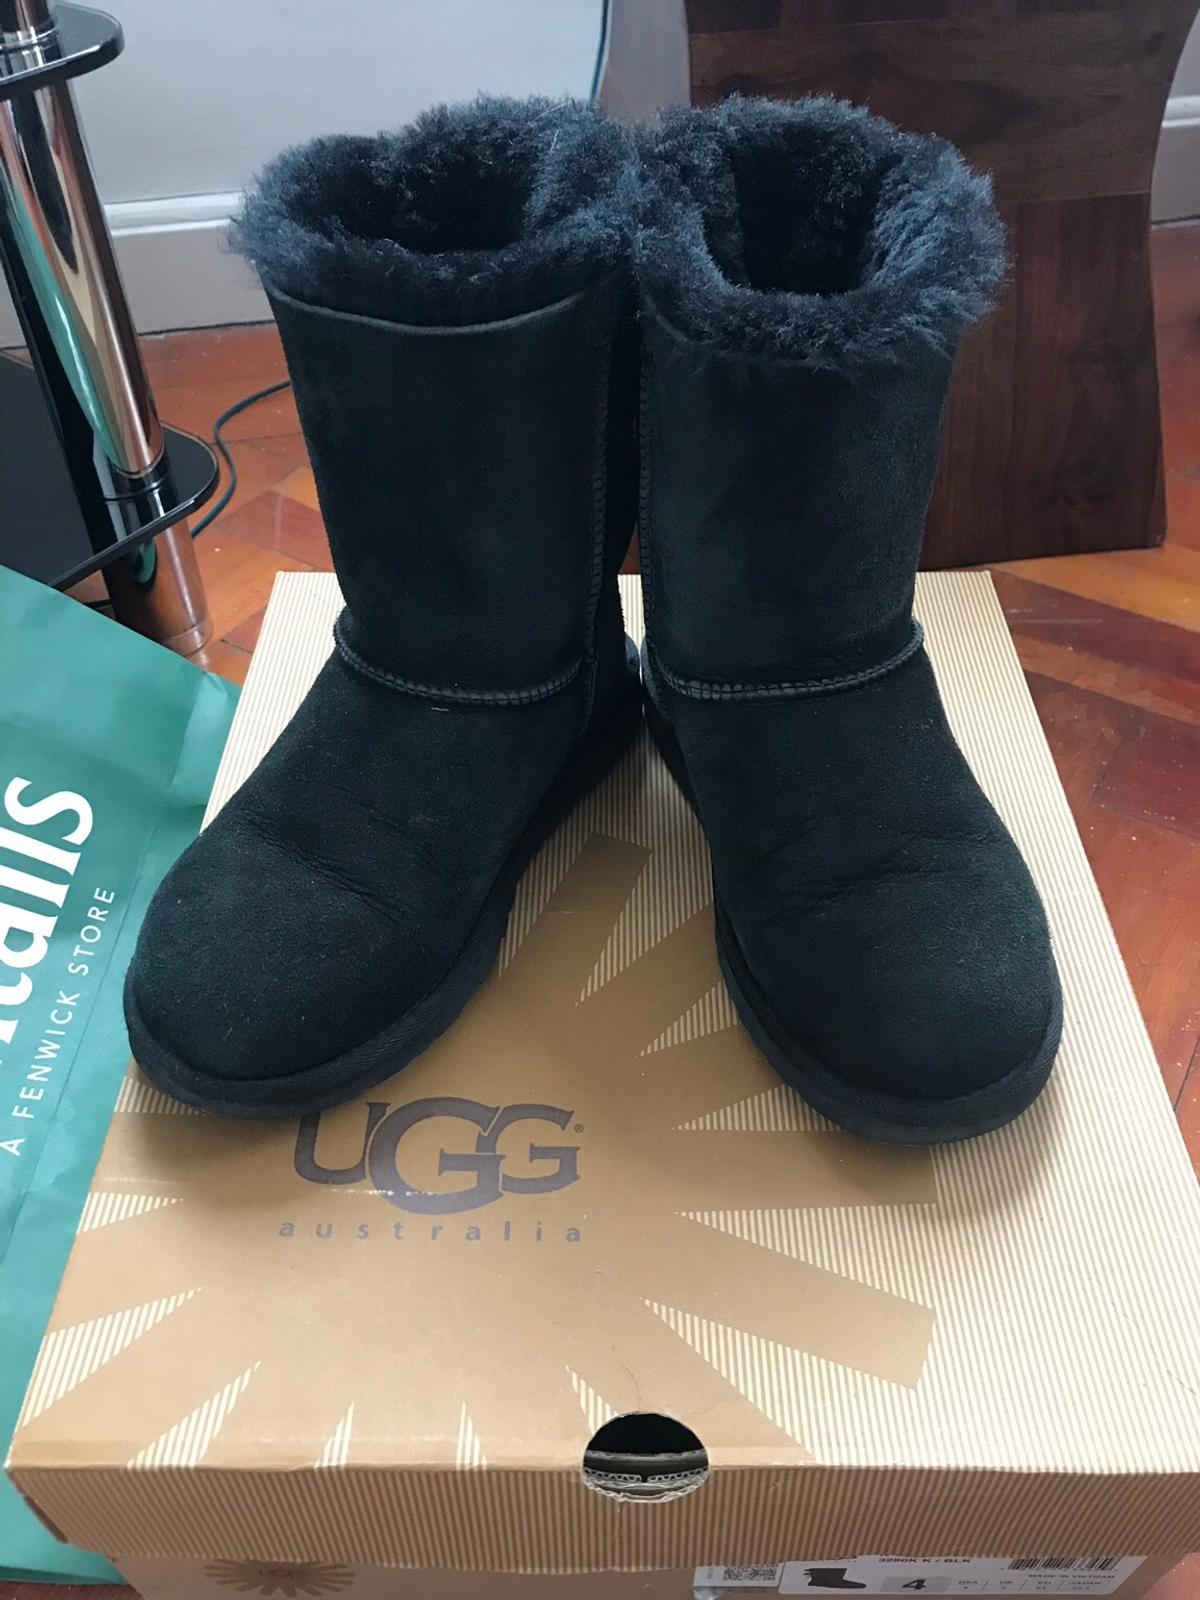 HMG Properties — UGG outlet on sale | Save up to 70%